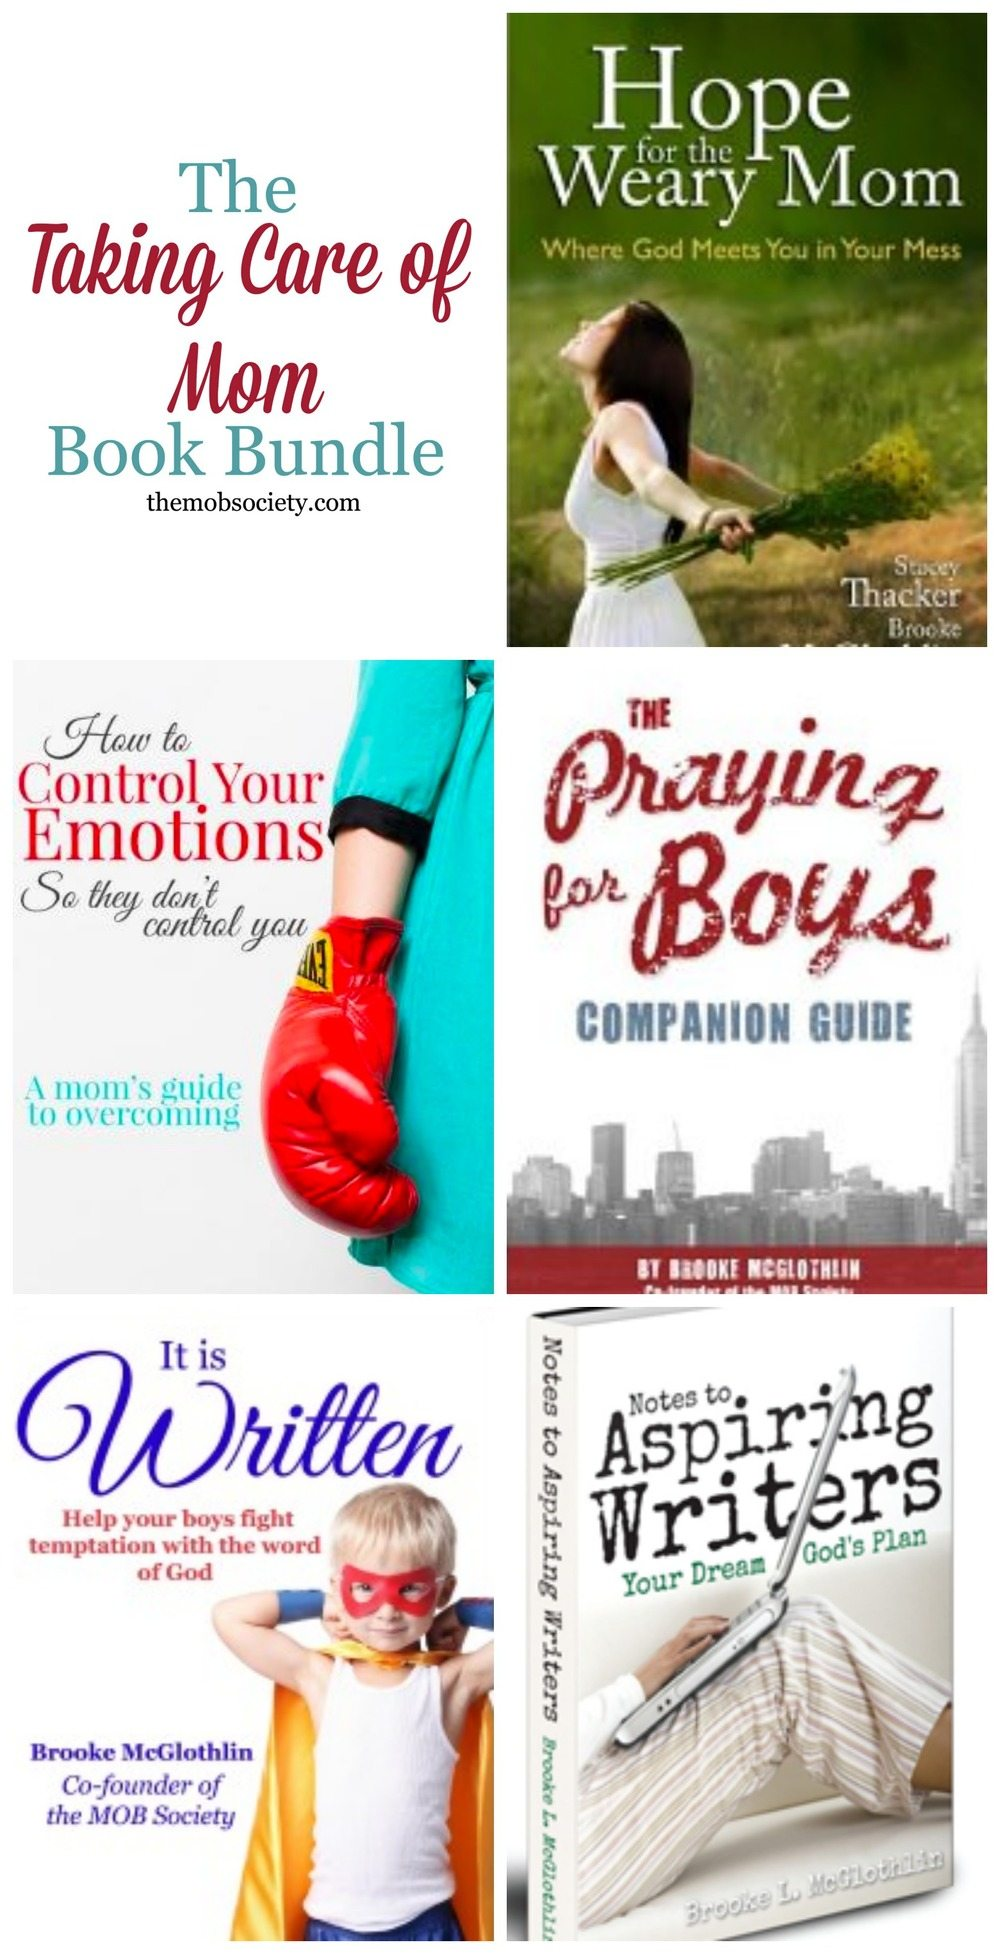 Grab ALL of Brooke McGlothlin's ebooks for 50% off! Limited time offer!